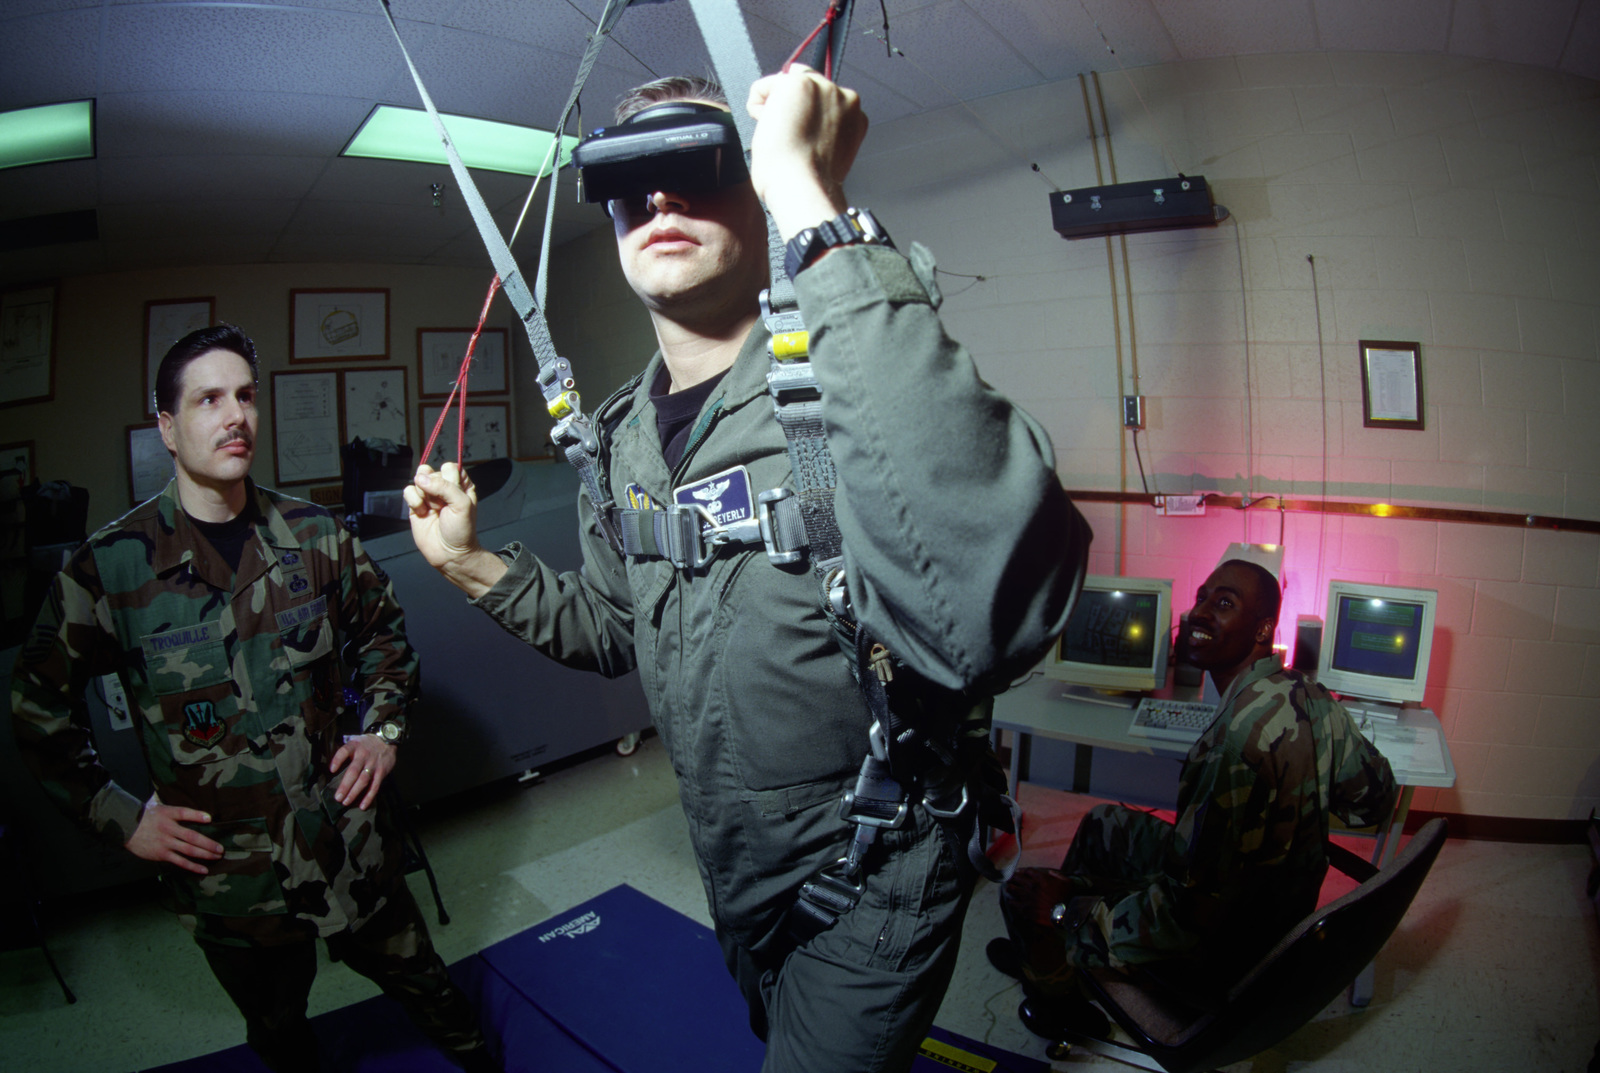 US Air Force (USAF) Captain (CPT) Bruce Beyerly, practices parachute landings using special 3-D goggles as USAF MASTER Sergeant (MSGT) Garrett Troquille, Life Support Superintendent, looks on inside the Life Support Center at Mountain Home Air Force Base, Idaho (ID). From AIRMAN Magazine April 1998 Issue